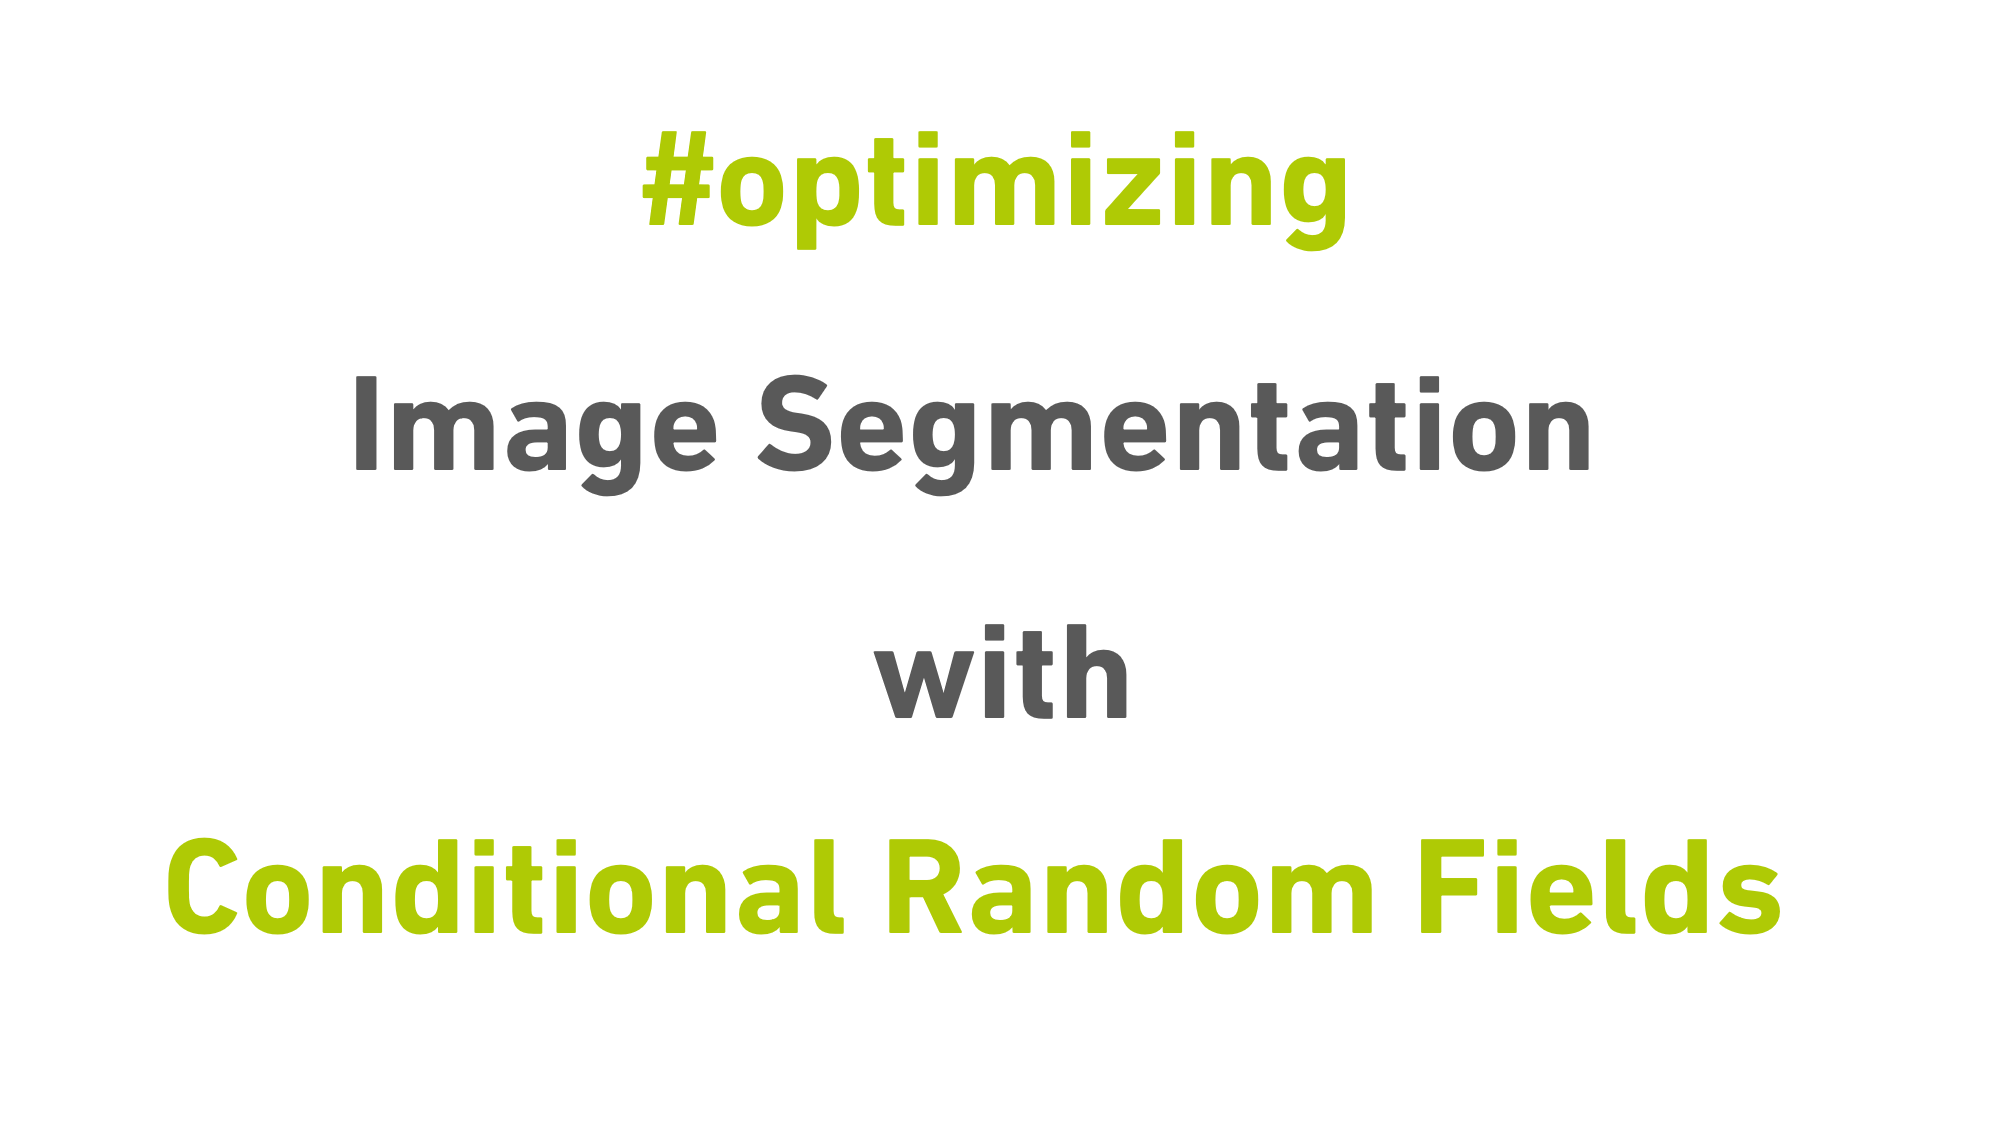 Improving Performance of Image Segmentation with Conditional Random Fields (CRF)